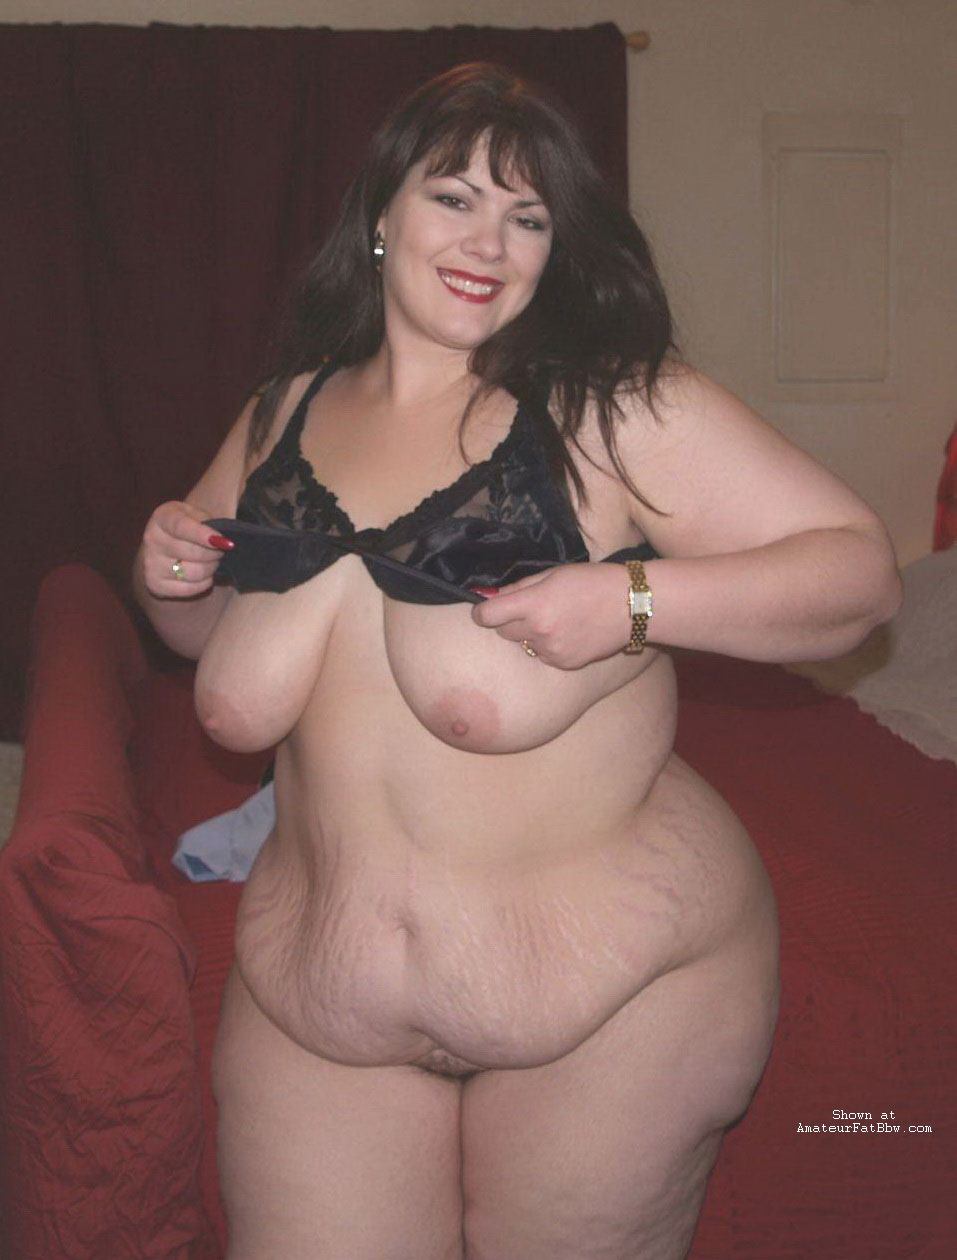 fat nude women pics - pretty transexual